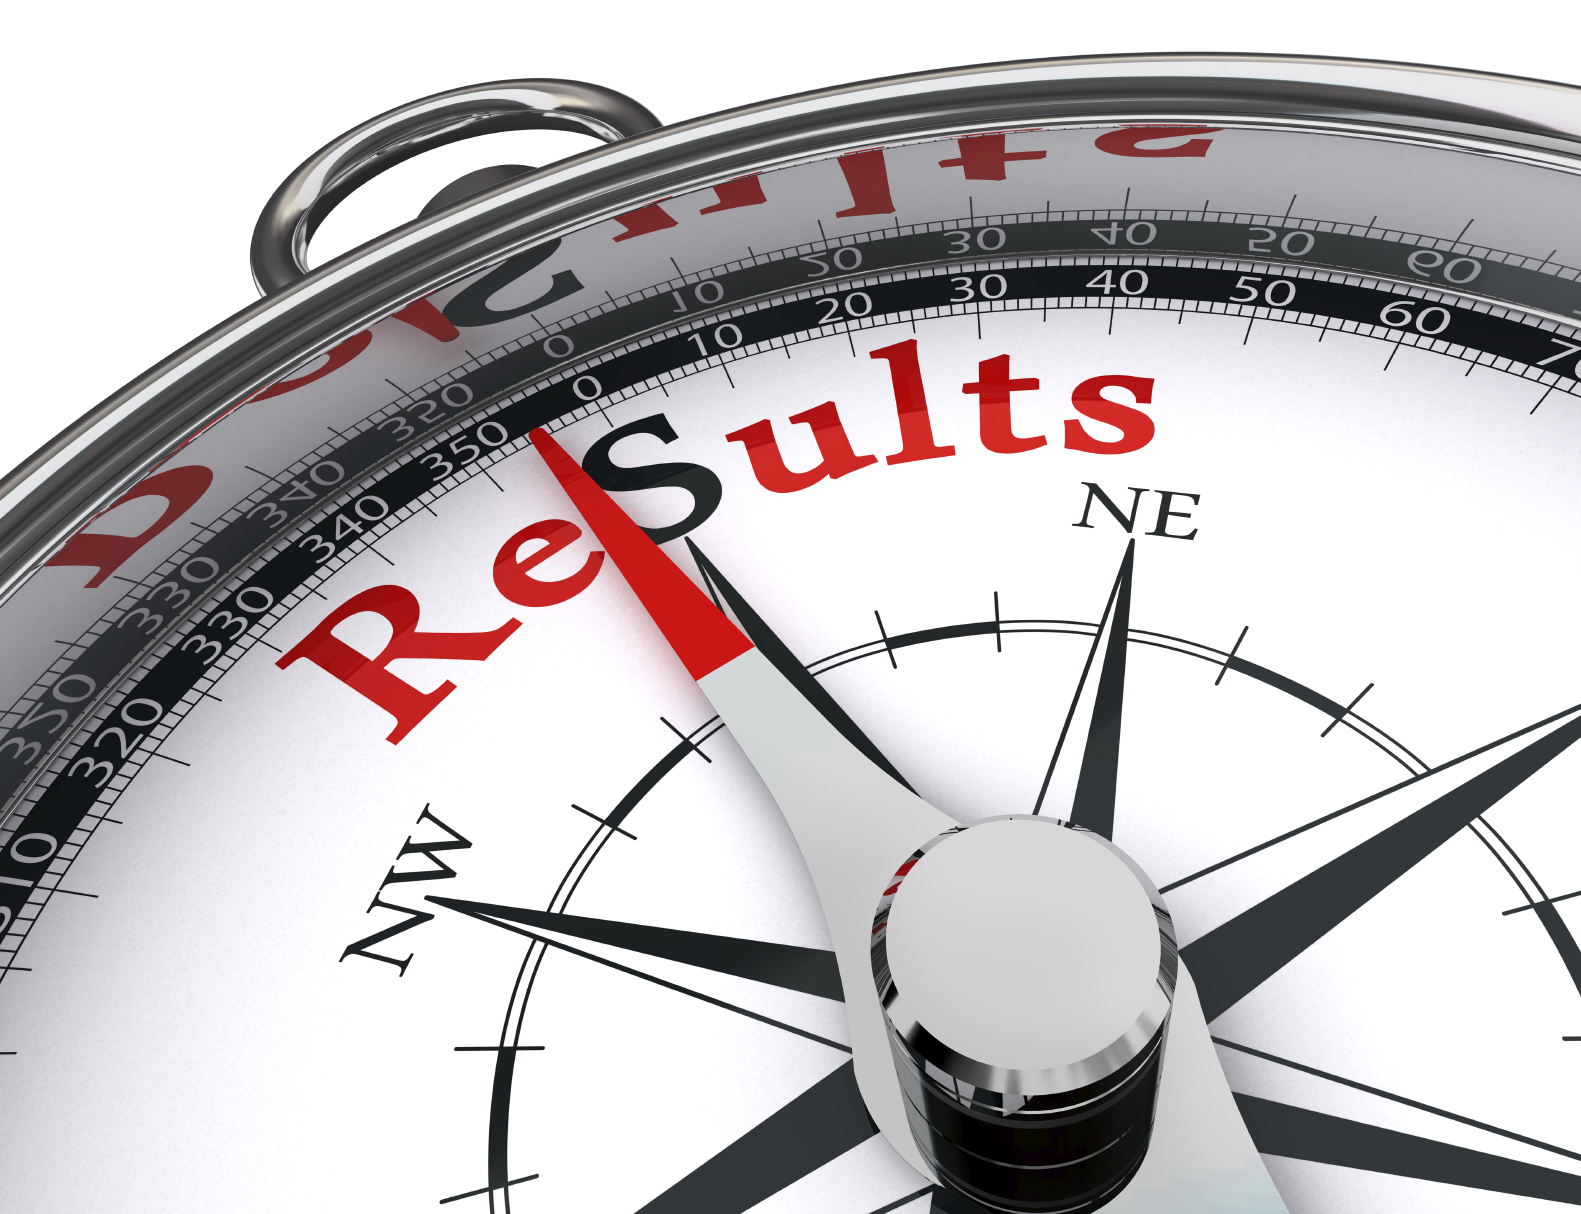 The Pyzdek Institute LLC Offers Results-Oriented Lean Six Sigma Training